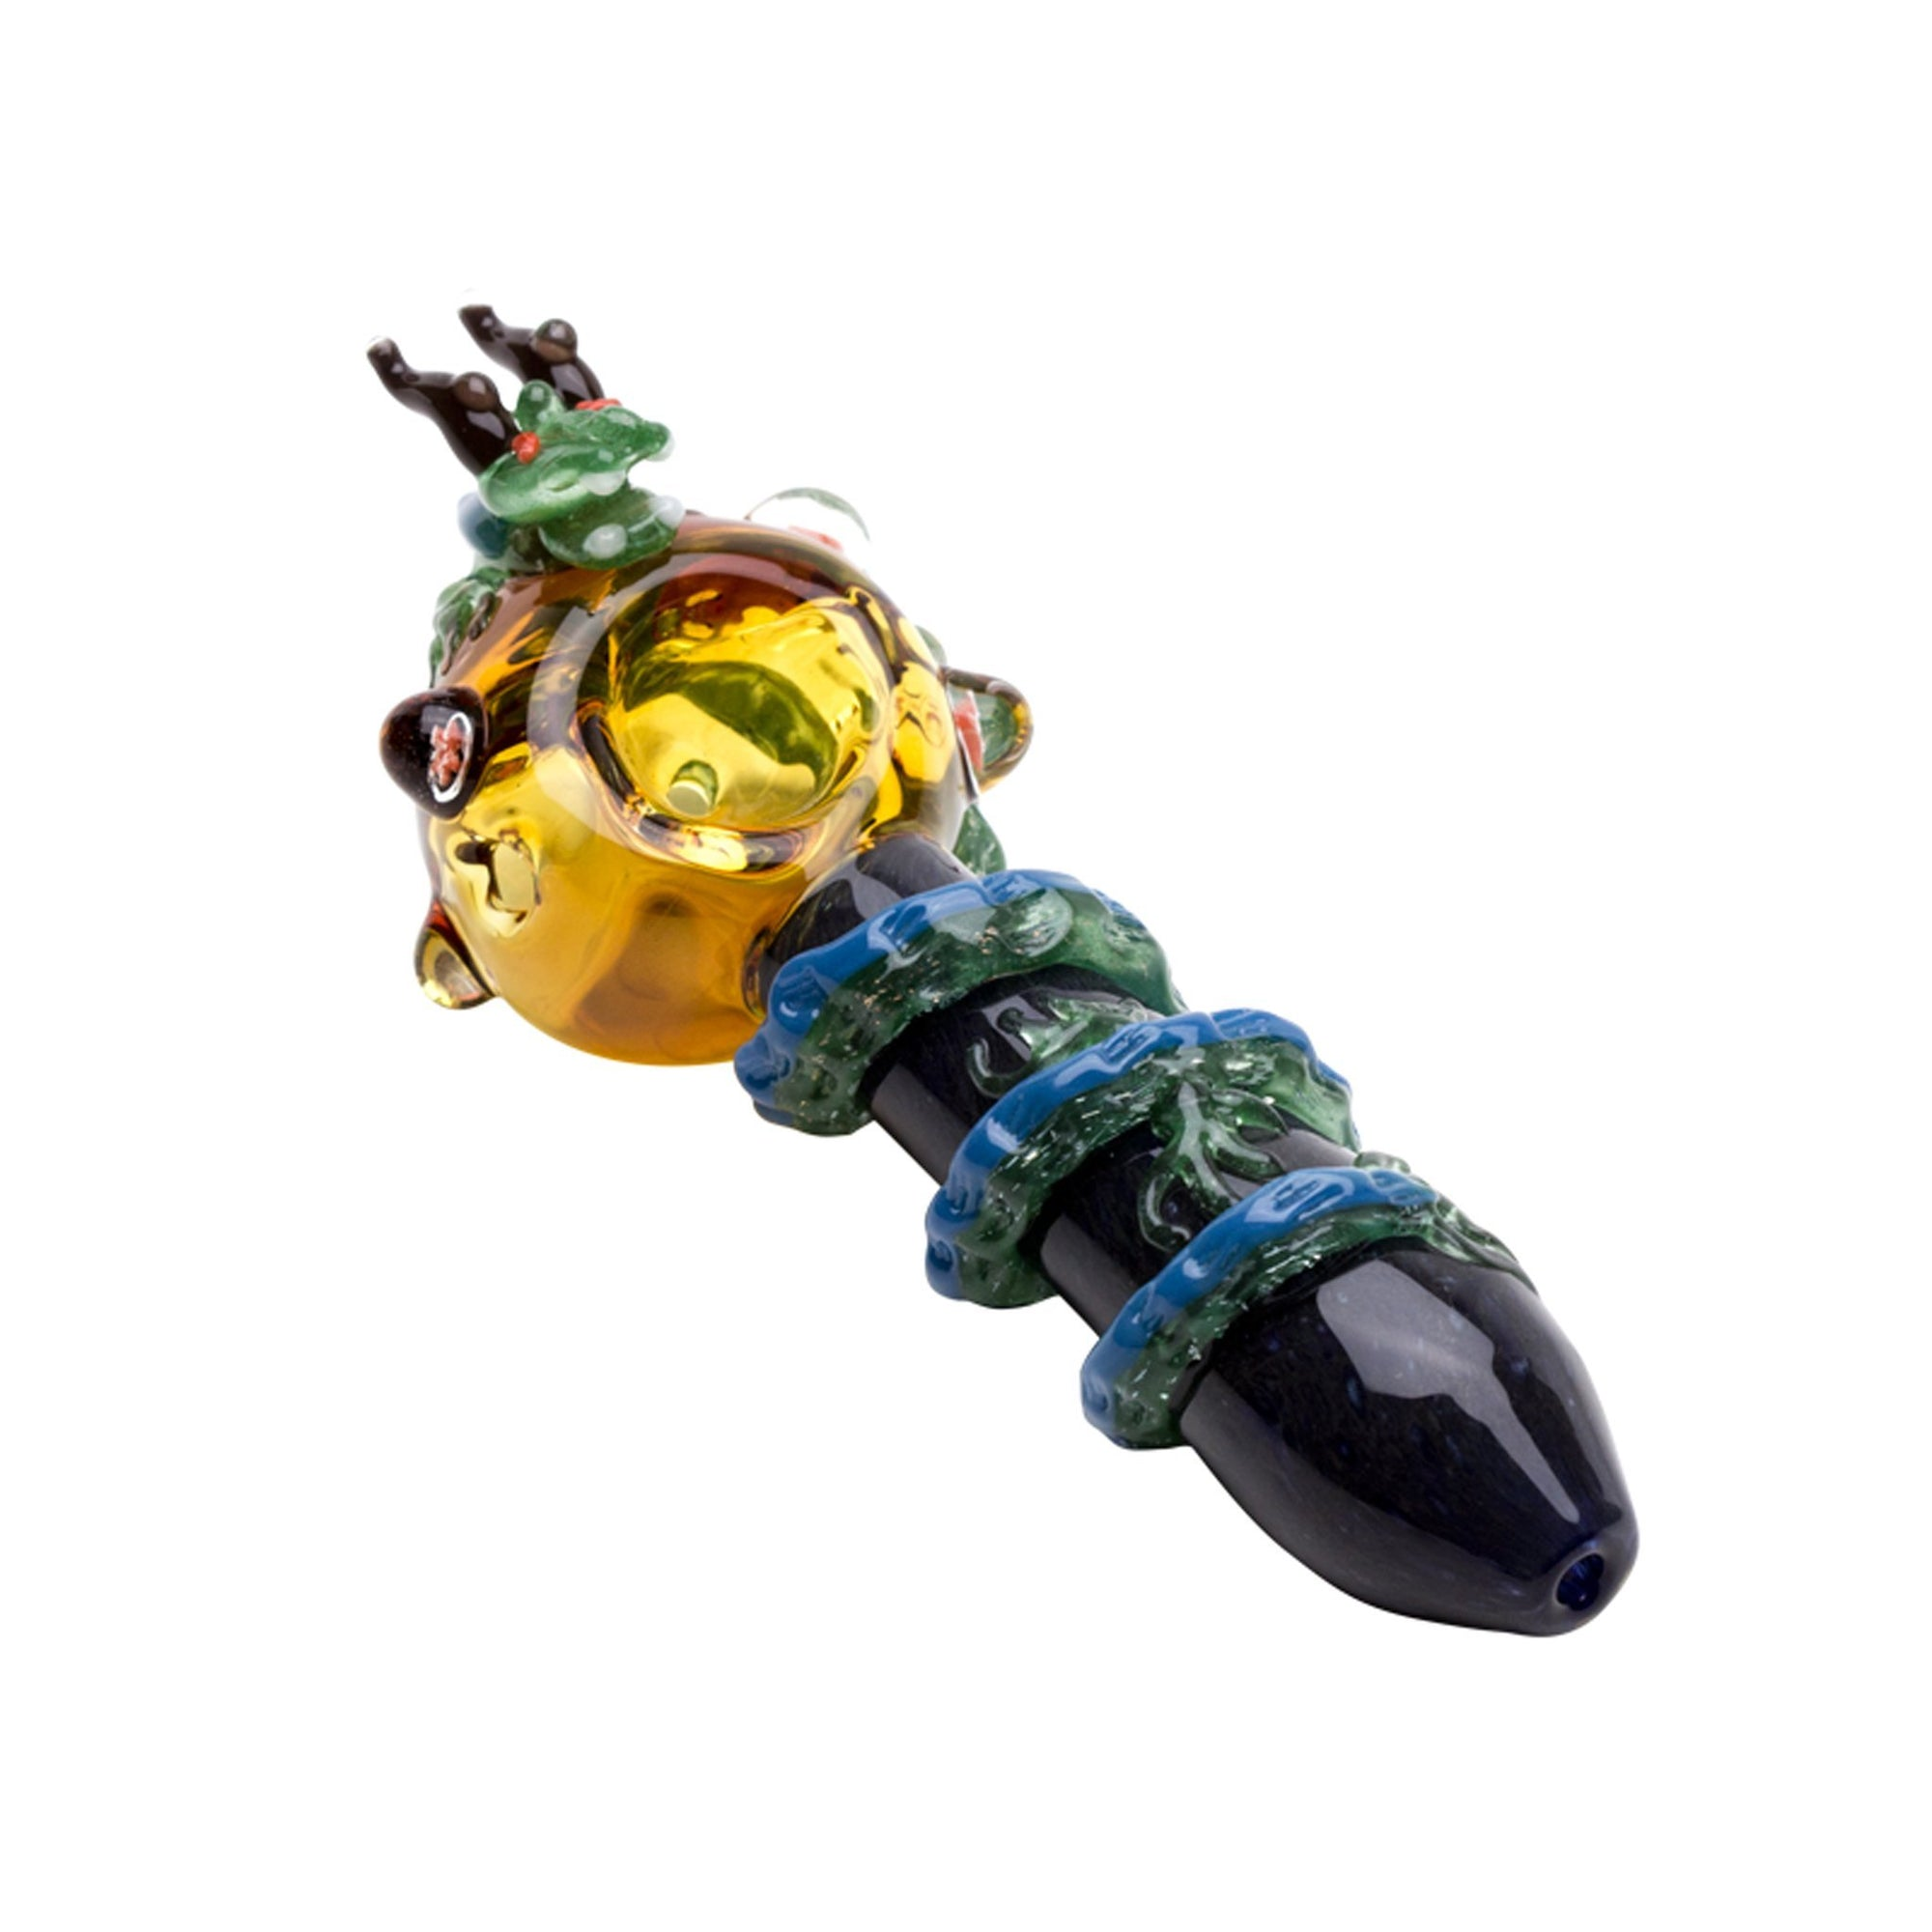 Full shot of intricately designed 4 inch pipe with dragon design dragon head on yellow bowl on left and black handle